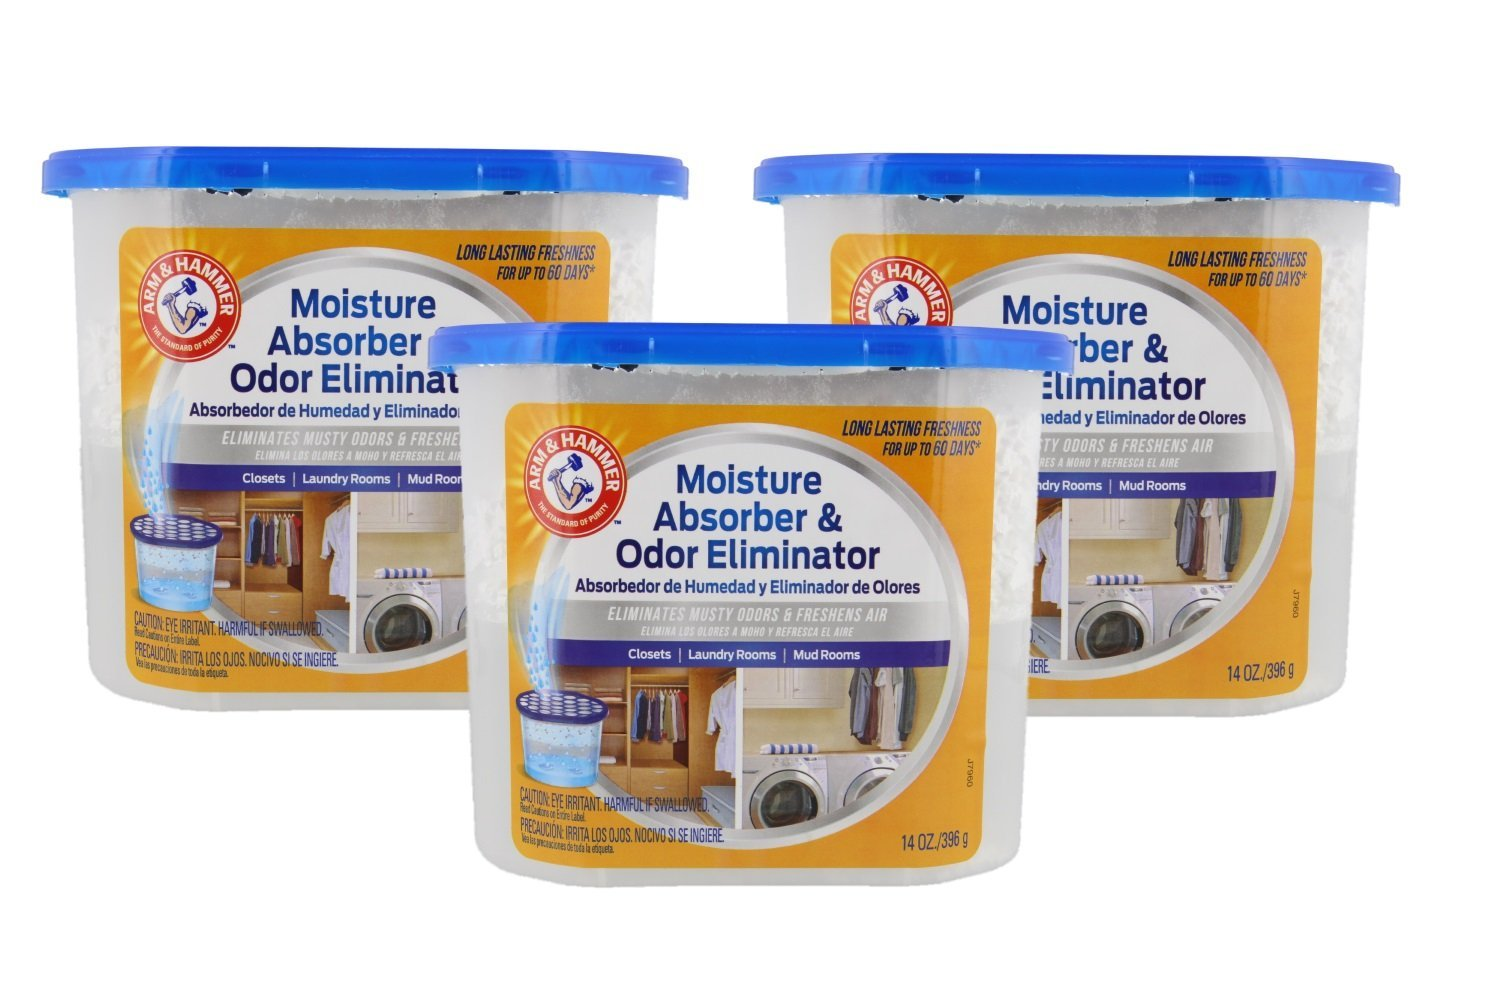 Arm & Hammer Moisture Absorber & Odor Eliminator 14oz Tub, 3 Pack - Eliminates Musty Odors & Freshens Air for Closets, Laundry rooms, Mud Rooms, white